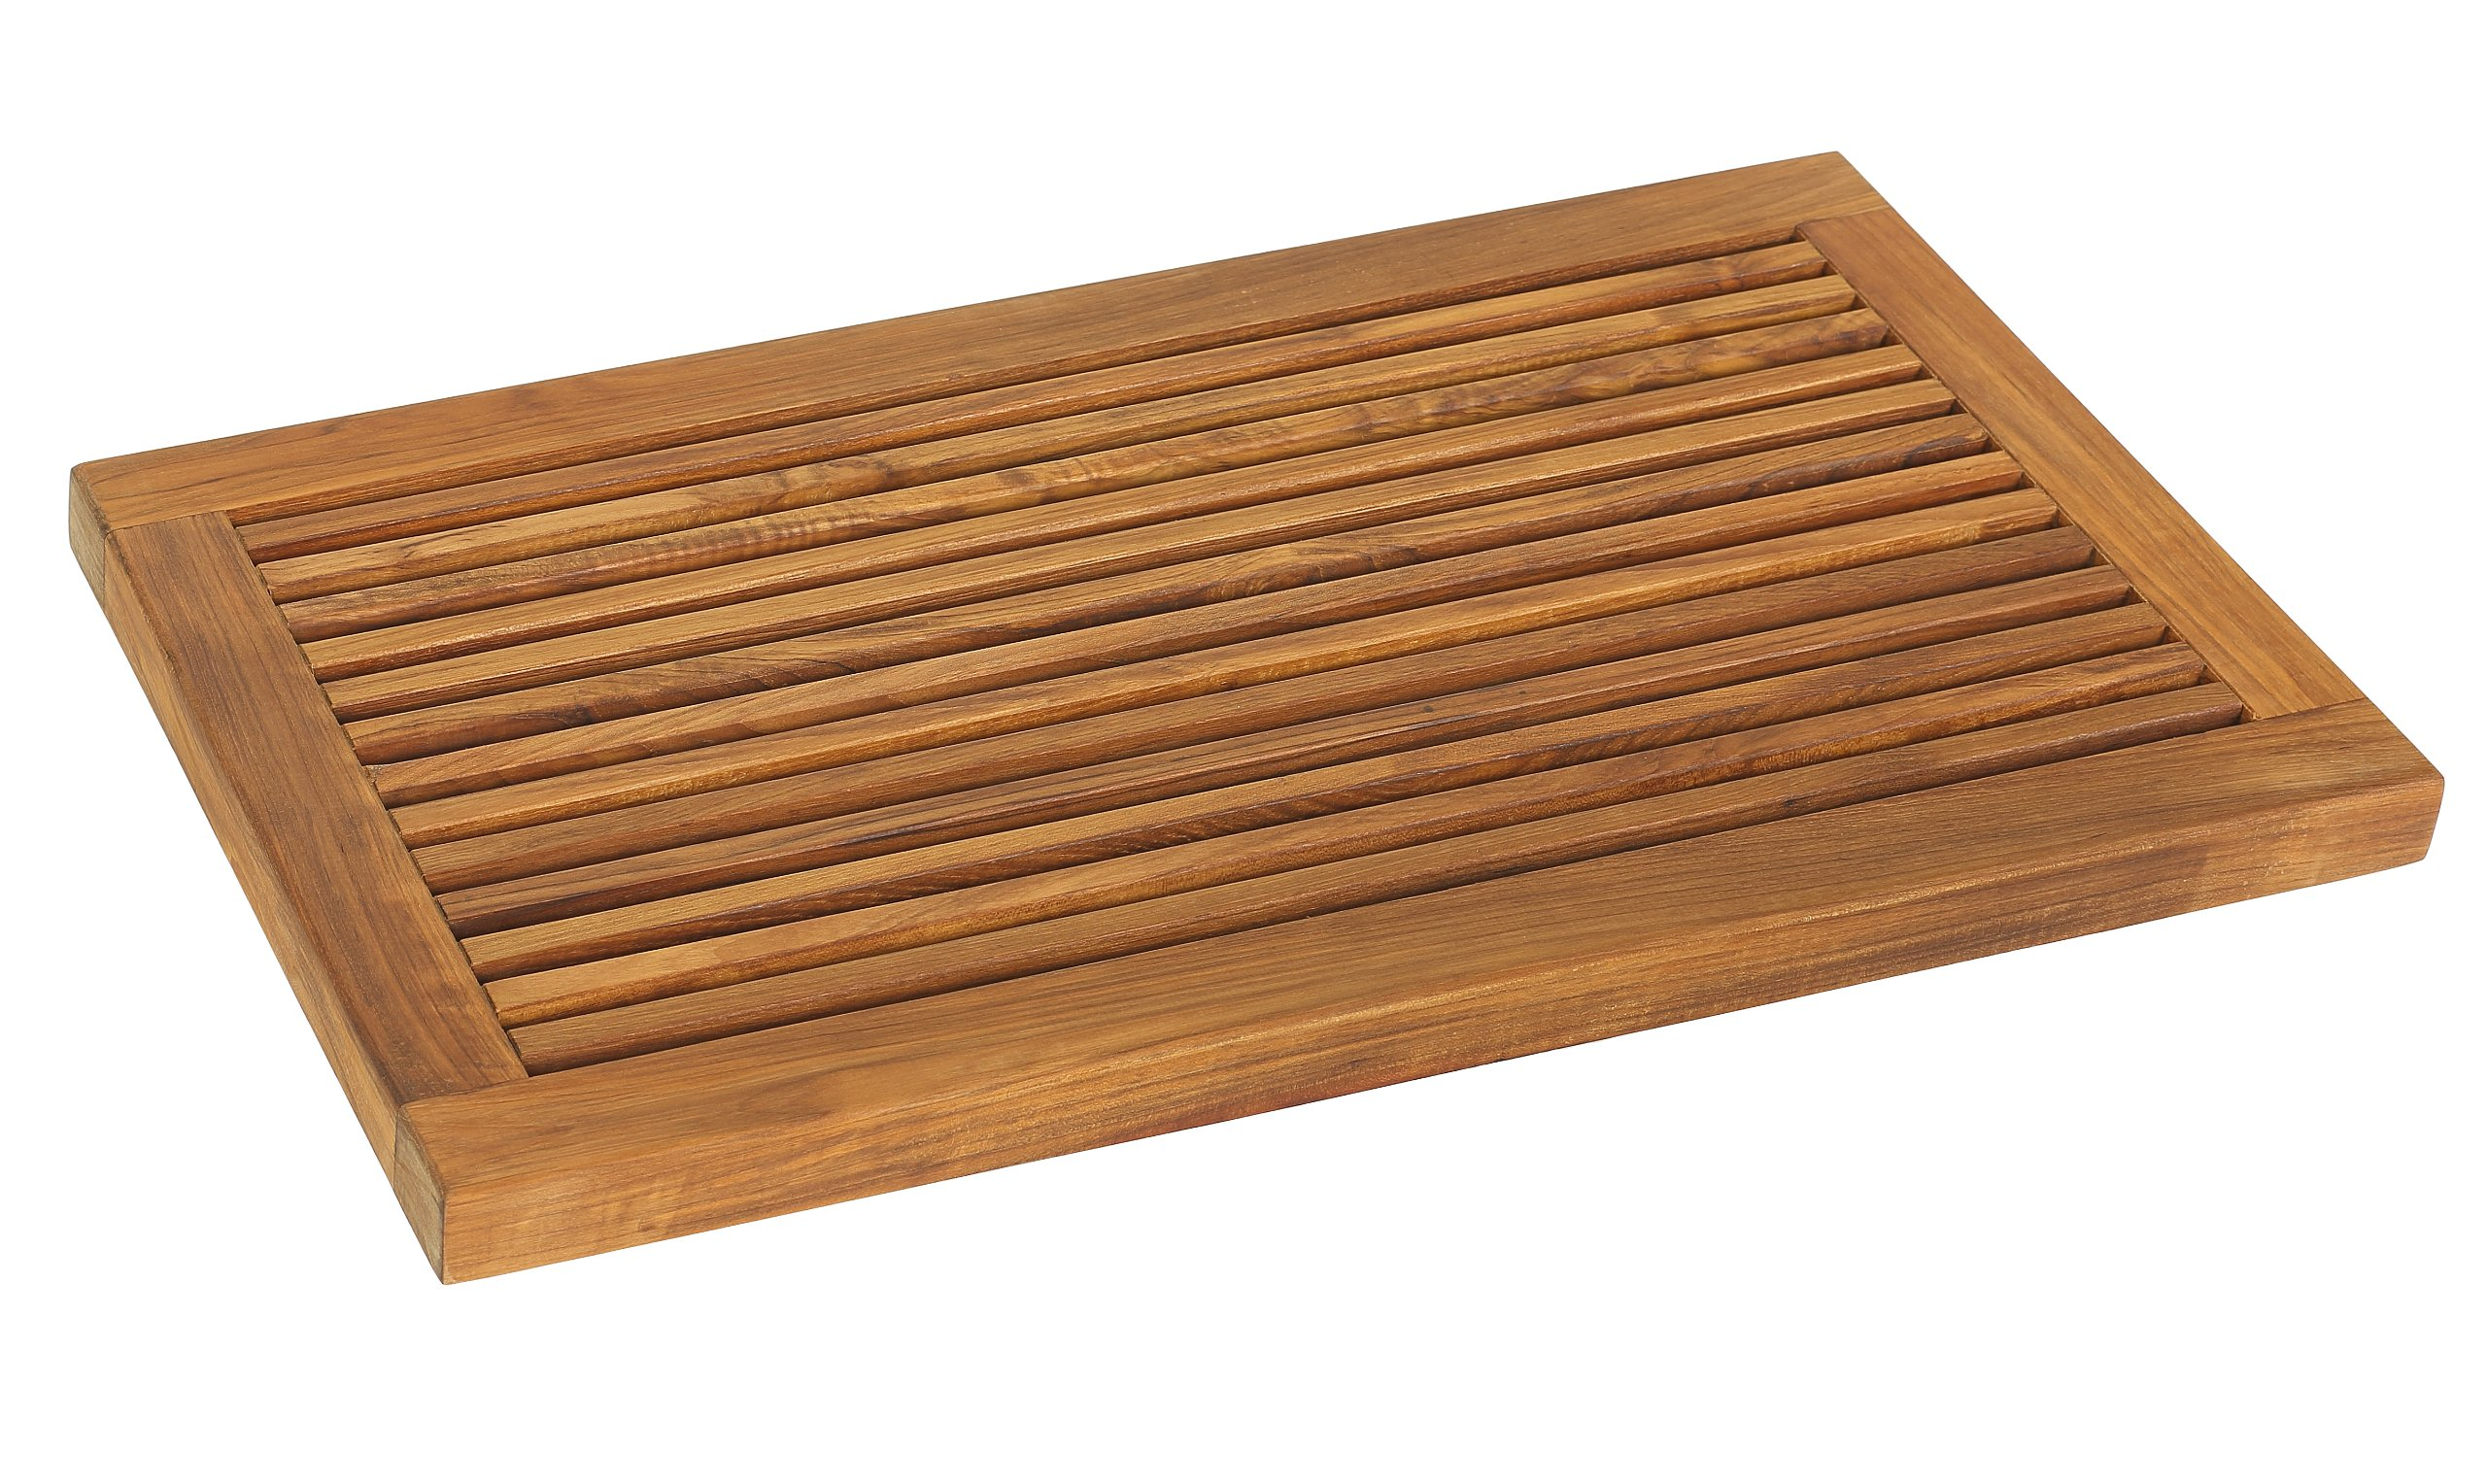 Bare Decor Dasha Spa Shower or Door Mat, 31.5 by 17.75-Inch, Solid Teak Wood and Oiled Finish by Bare Decor